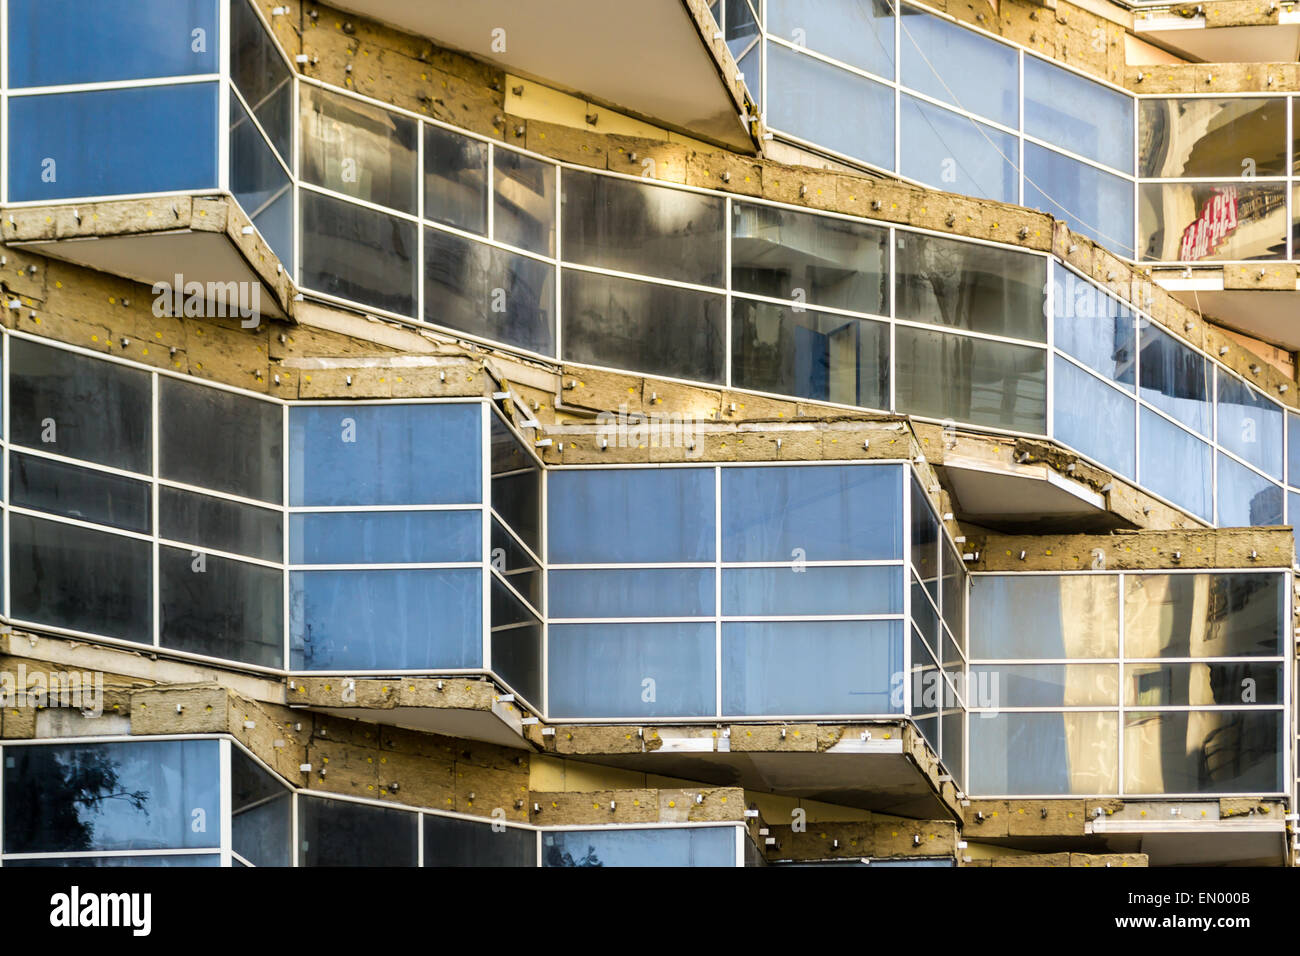 Sharp triangle window edges create acute angles in modern building design - Stock Image